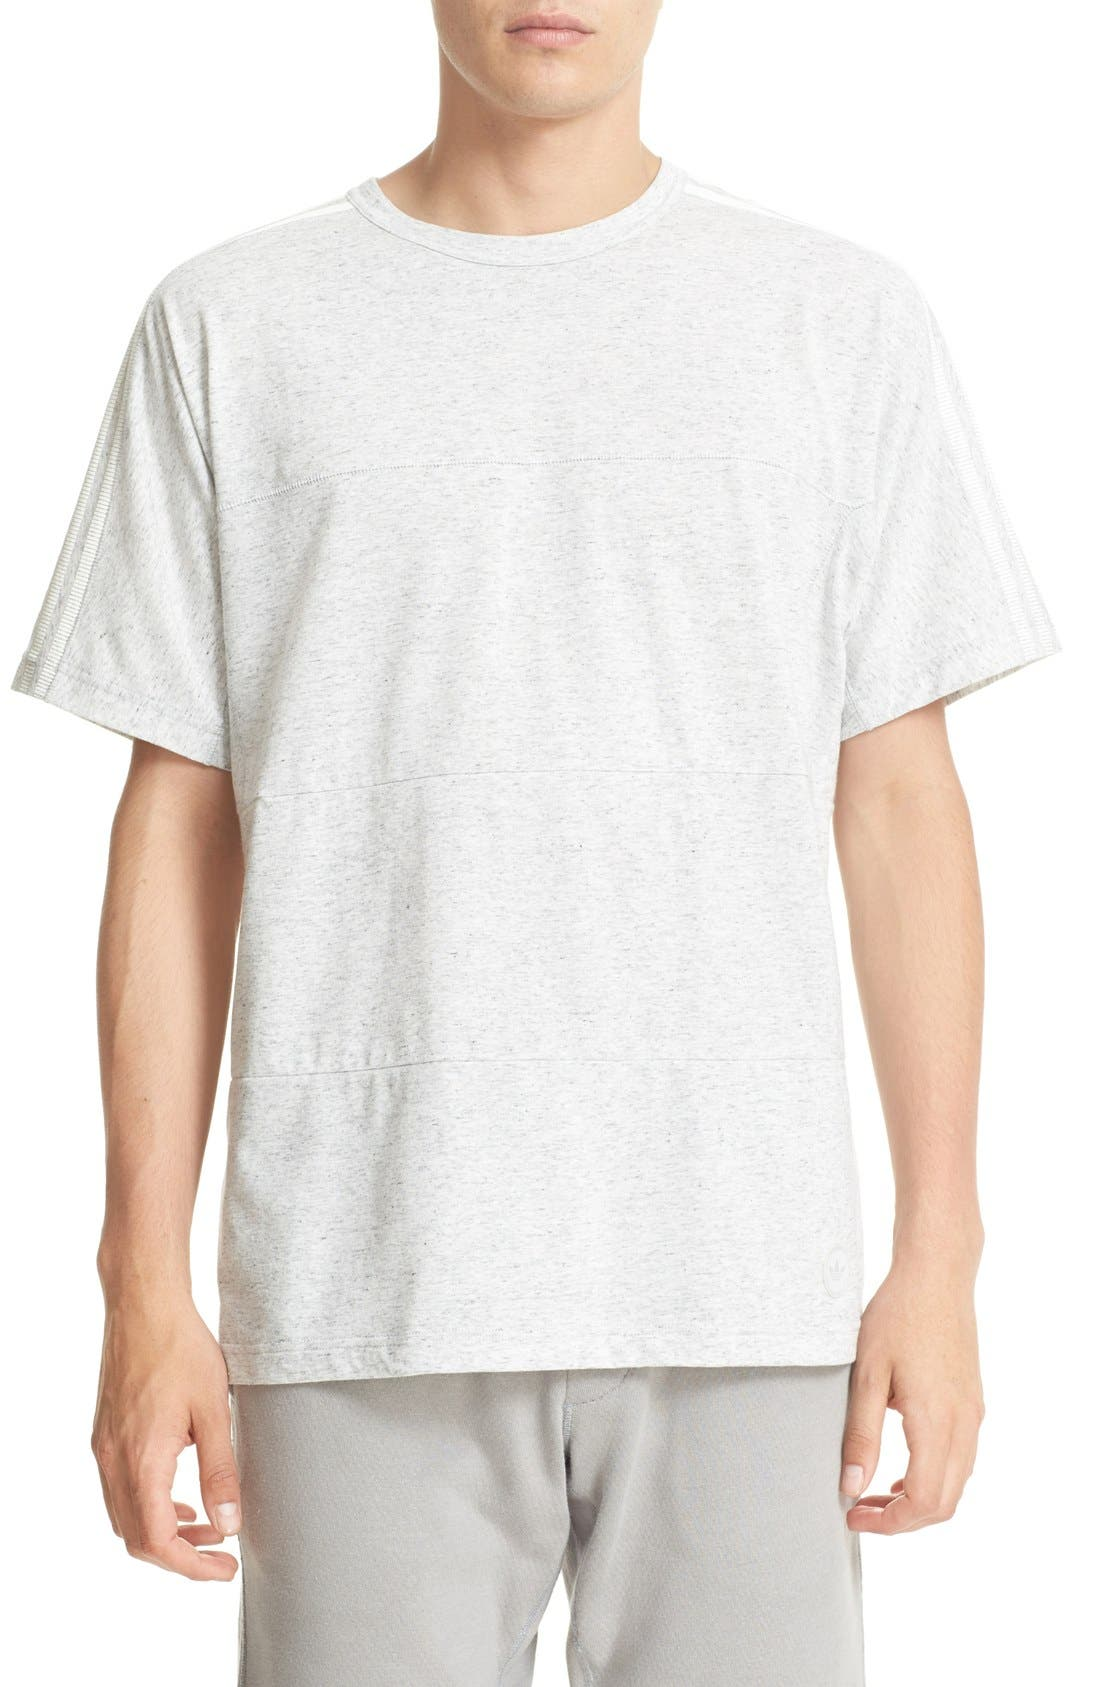 Alternate Image 1 Selected - wings + horns x adidas Cotton Blend T-Shirt